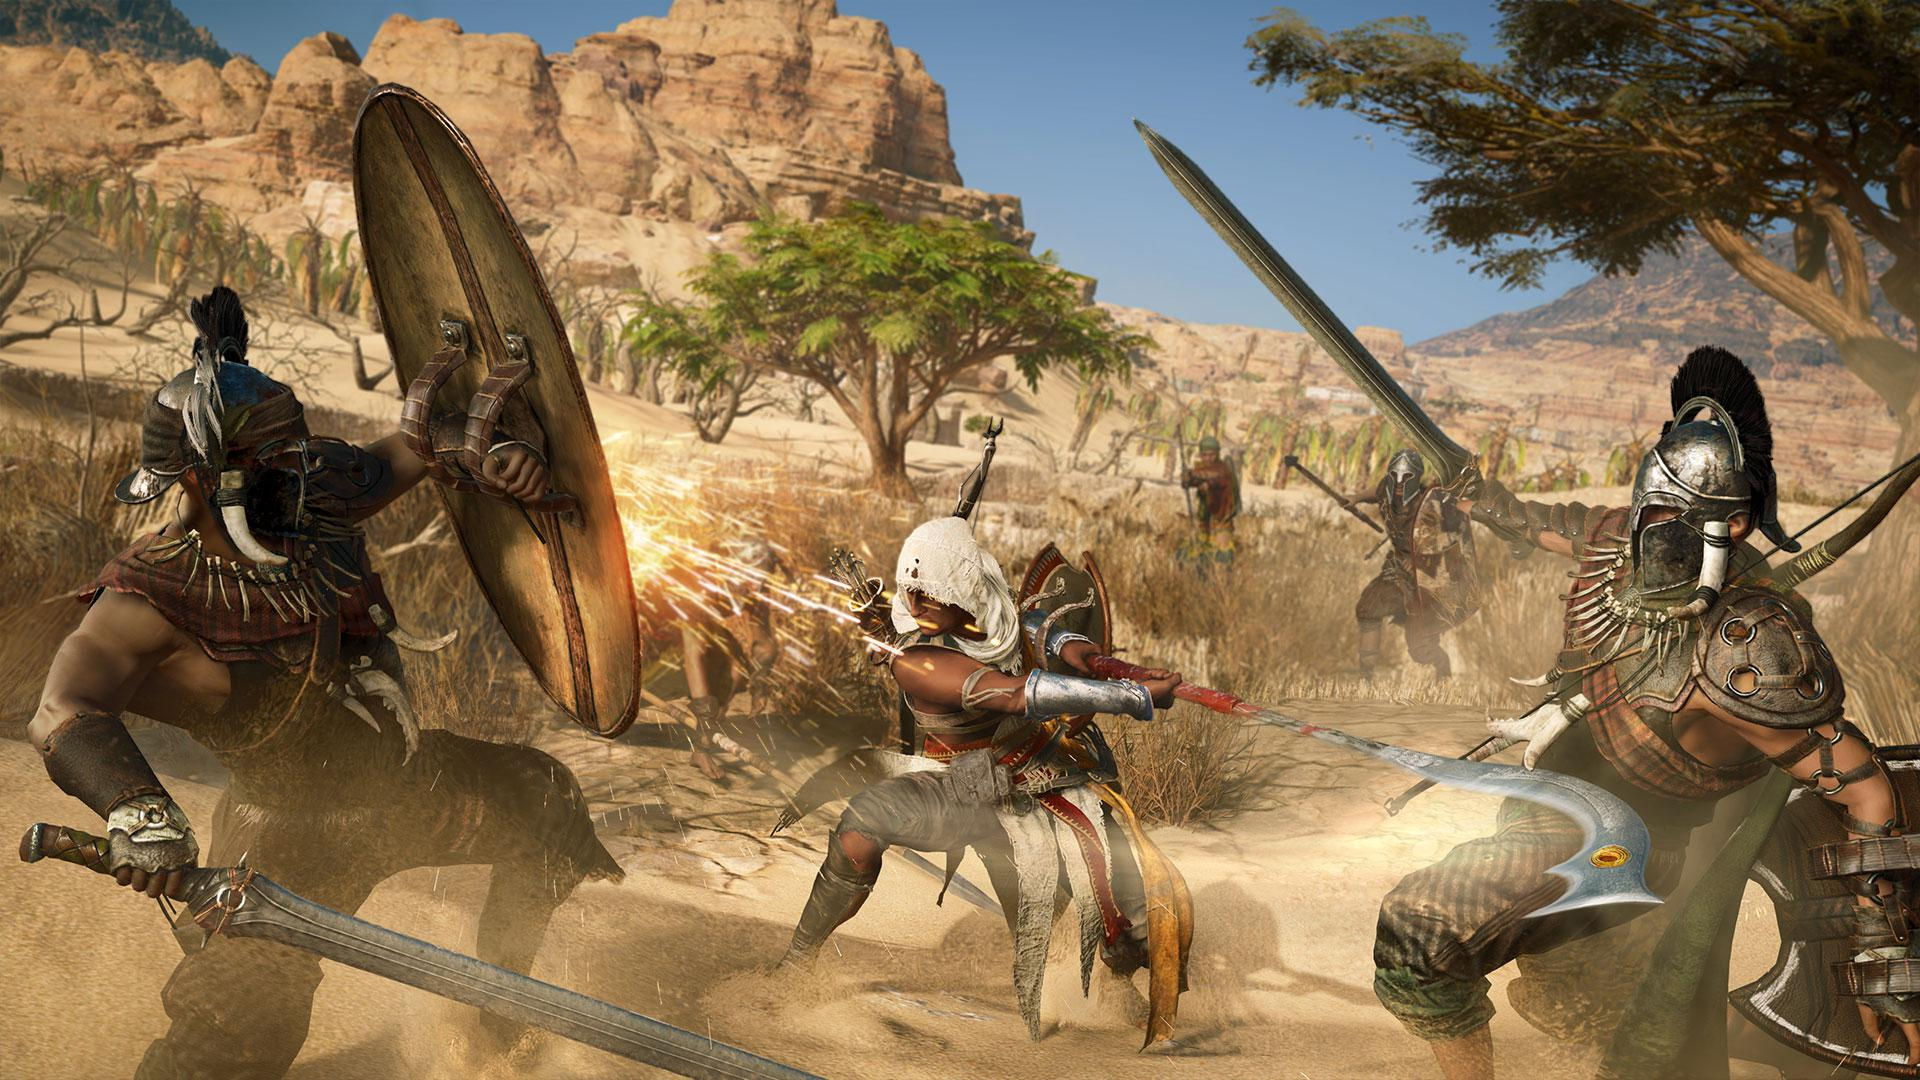 Ubisoft's Assassin's Creed Origins was shown running on an Xbox One X - and it looks spectacular